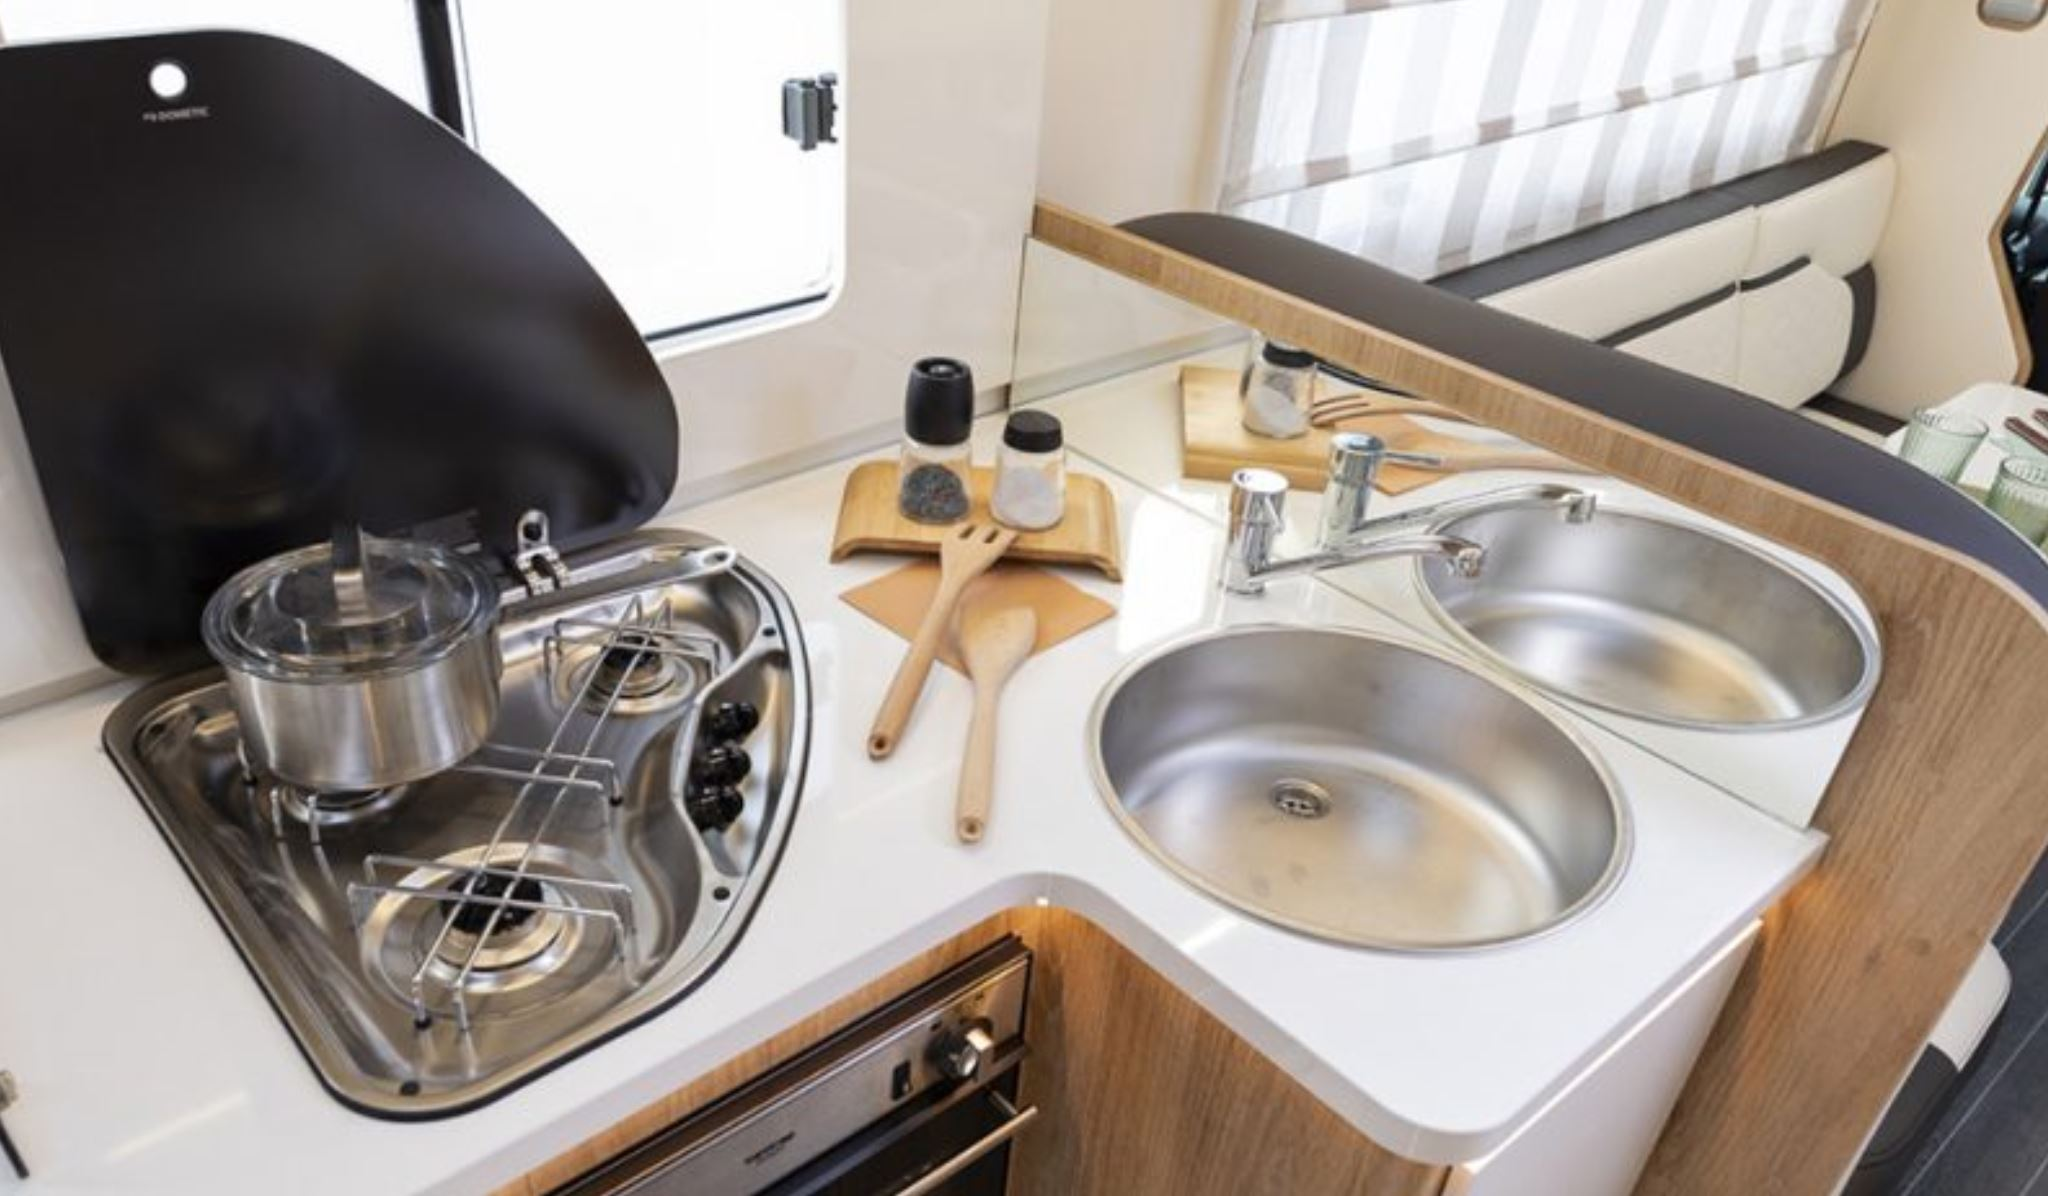 Image of kitchen cooking area including hob, oven and sink